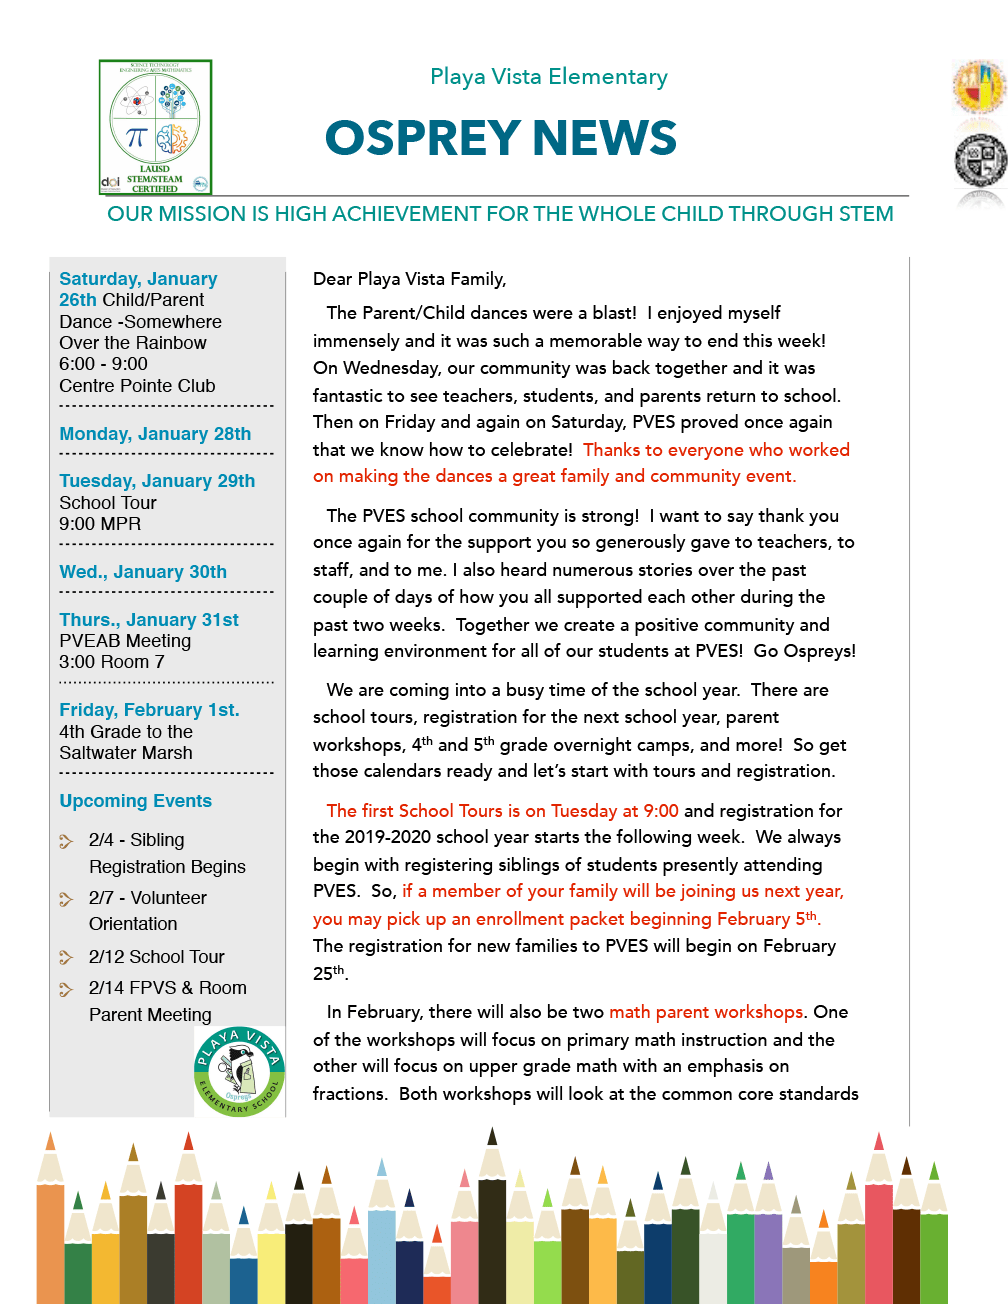 PVES Newsletter January 26, 2019 – Playa Vista Elementary School